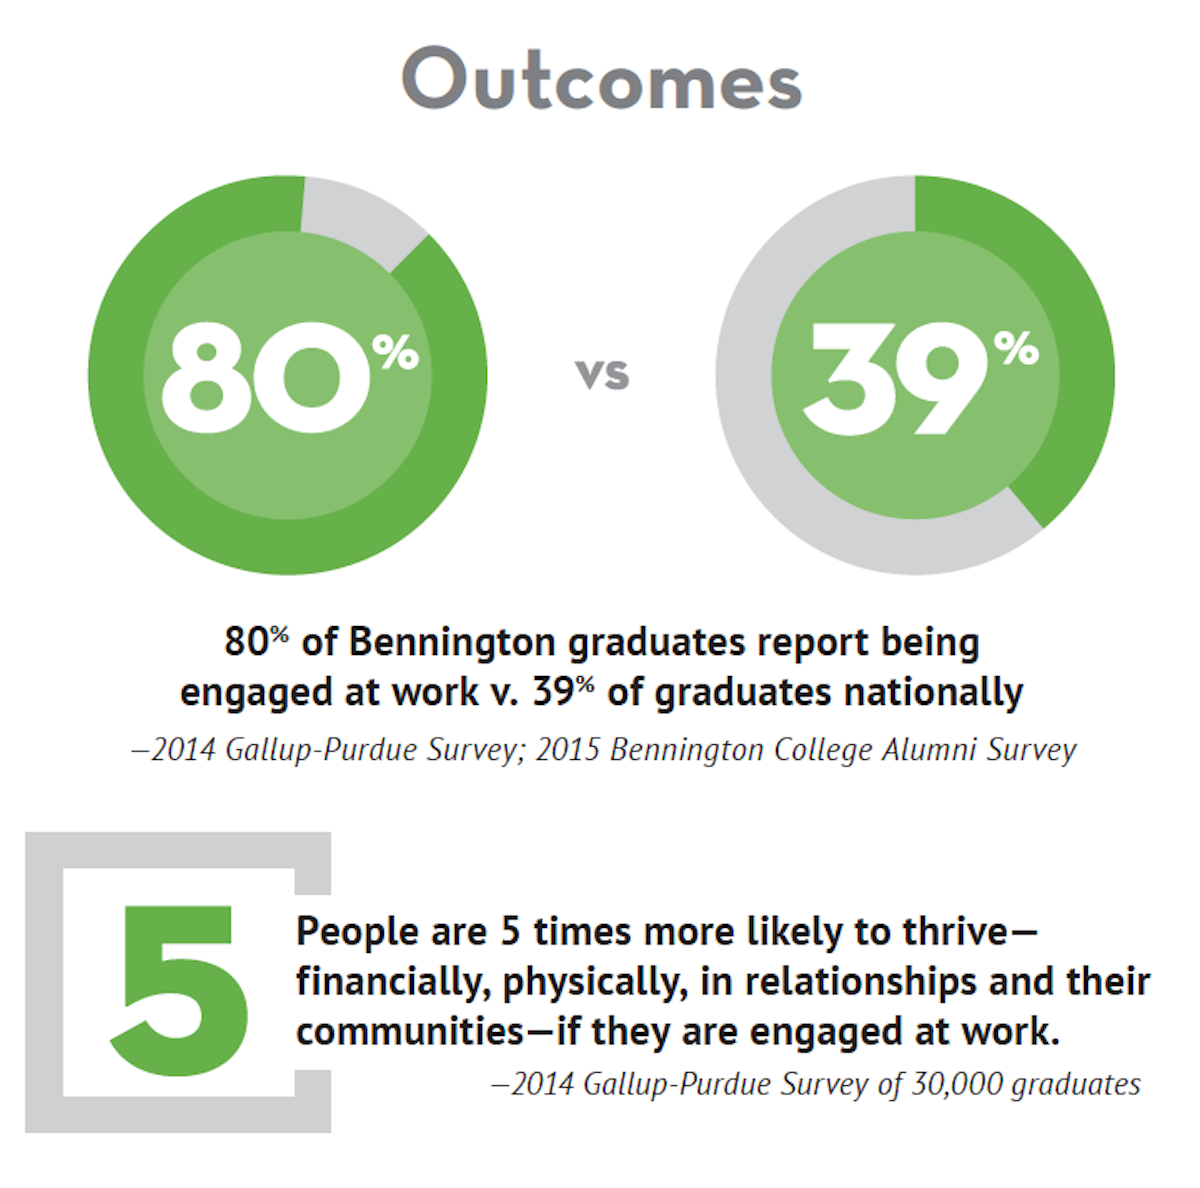 80% of graduates report being engaged at work vs 39% nationally